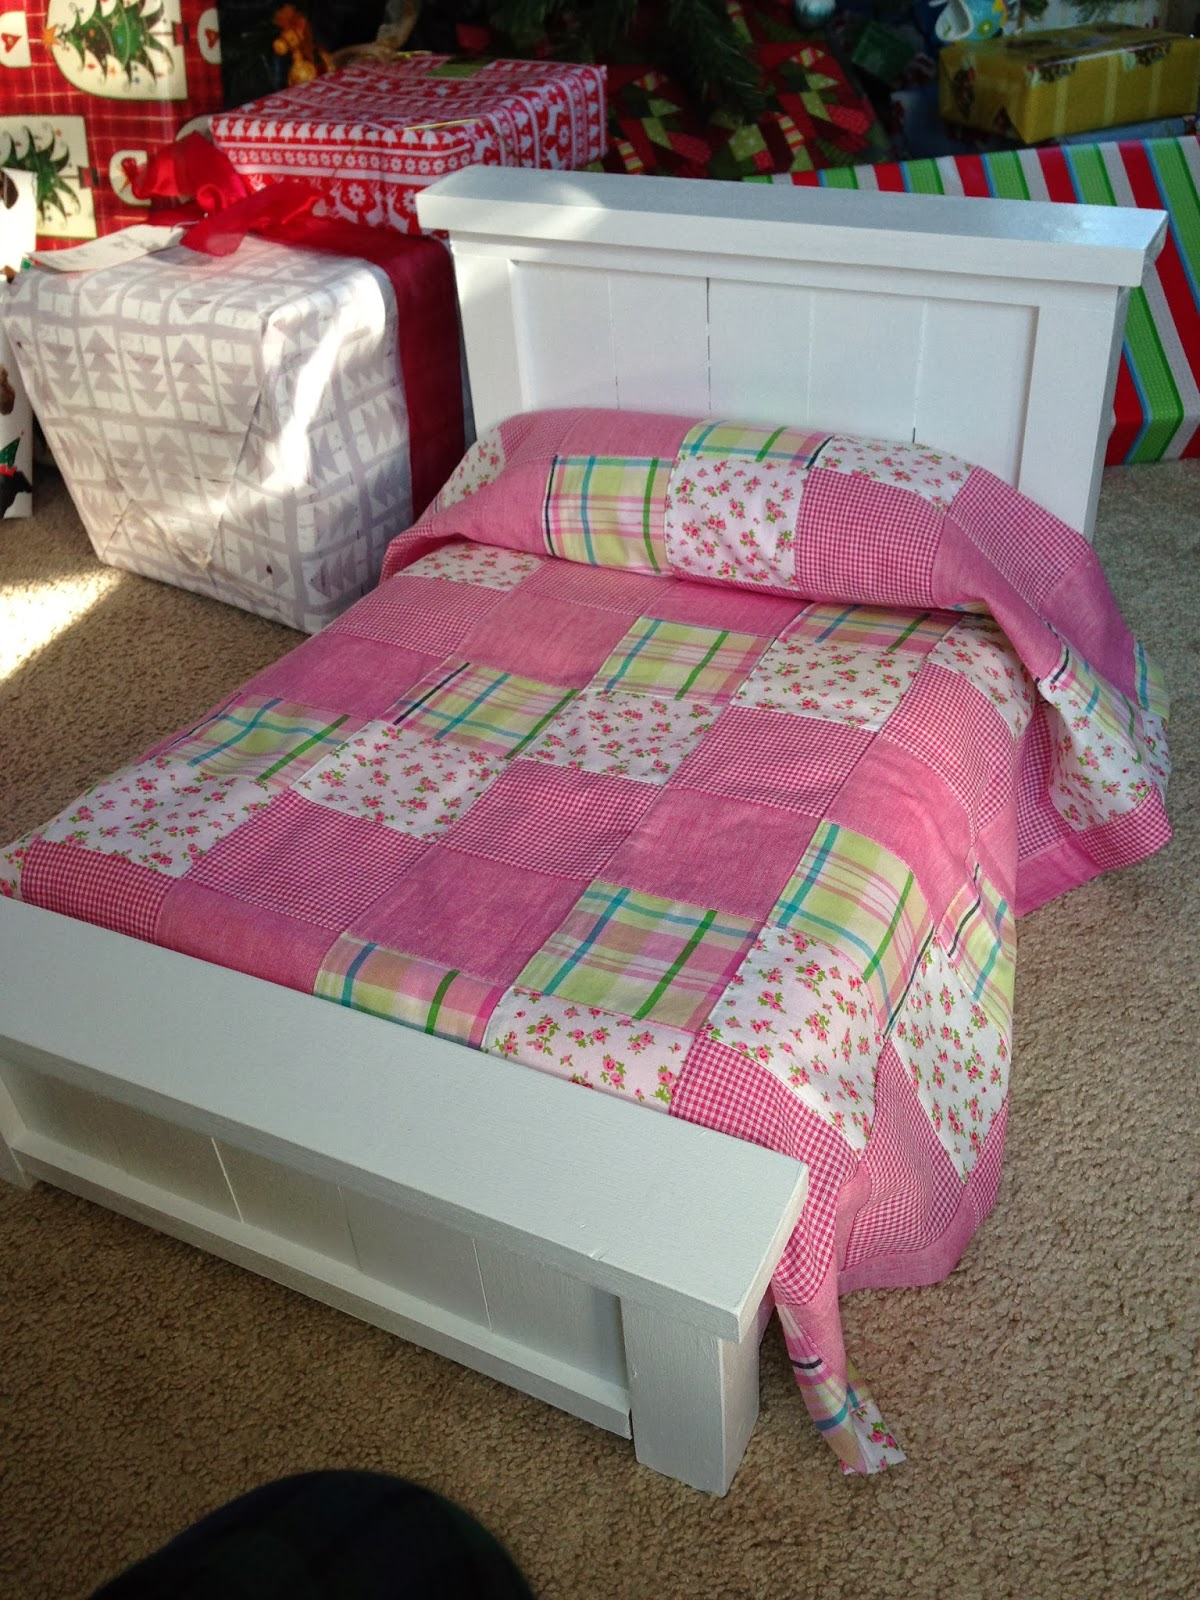 Do It Yourself Home Design: Celtic Heart Knitting And Quilting: American Girl Doll Bed And Bedding